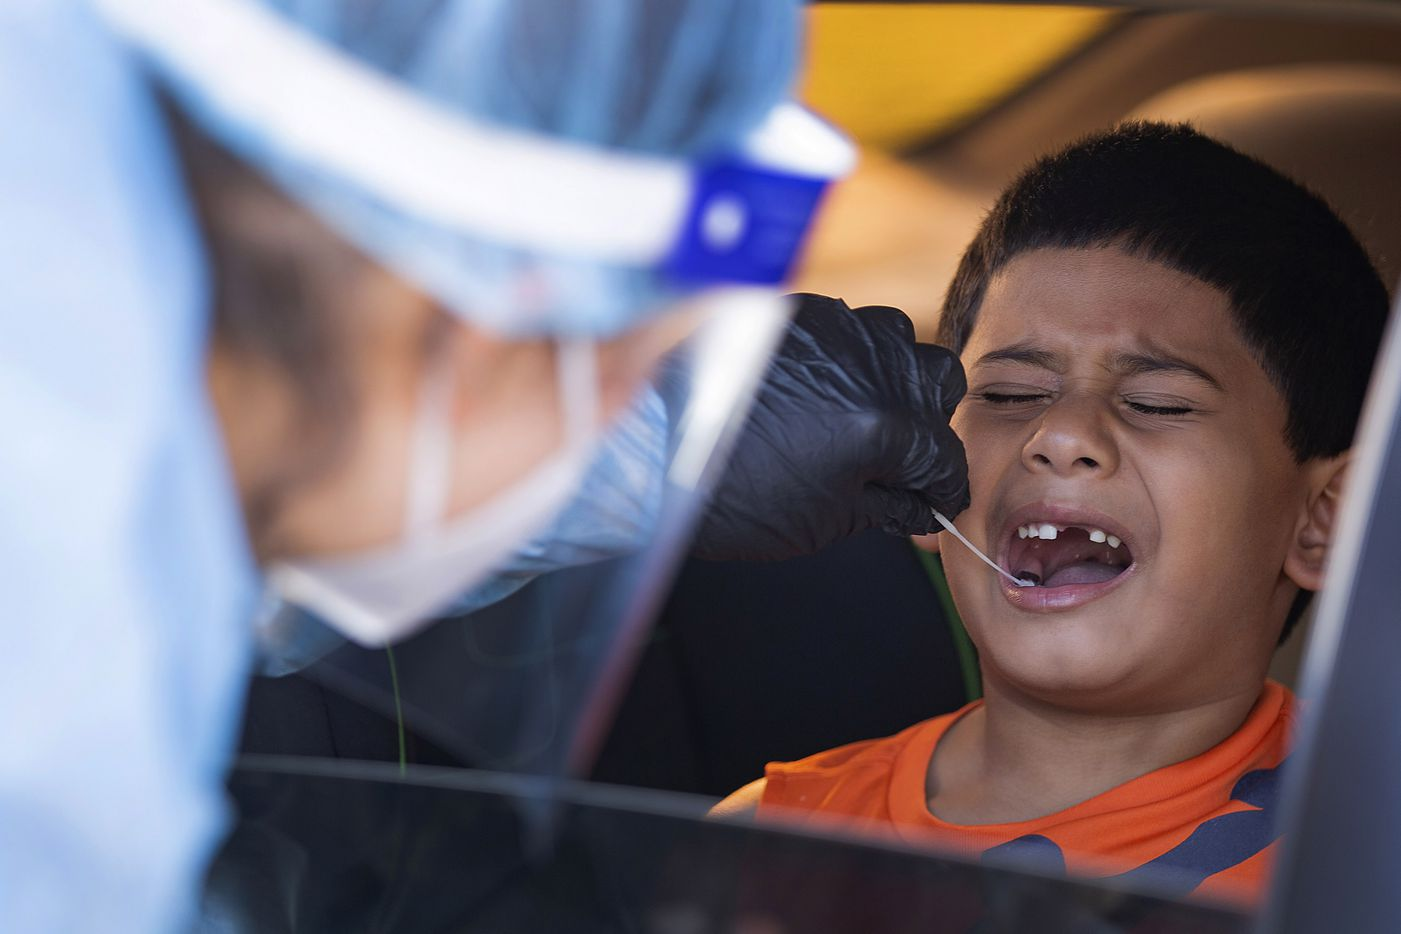 Elizabeth Osborn, medical assistant at WellHealth, swabs Josiah Soto's (4) mouth for COVID at Sharing Life Community Outreach, a nonprofit that provides food and other resources, in Mesquite on Tuesday, Oct. 20, 2020. The nonprofit has partnered with GoGetTested to offer free testing.